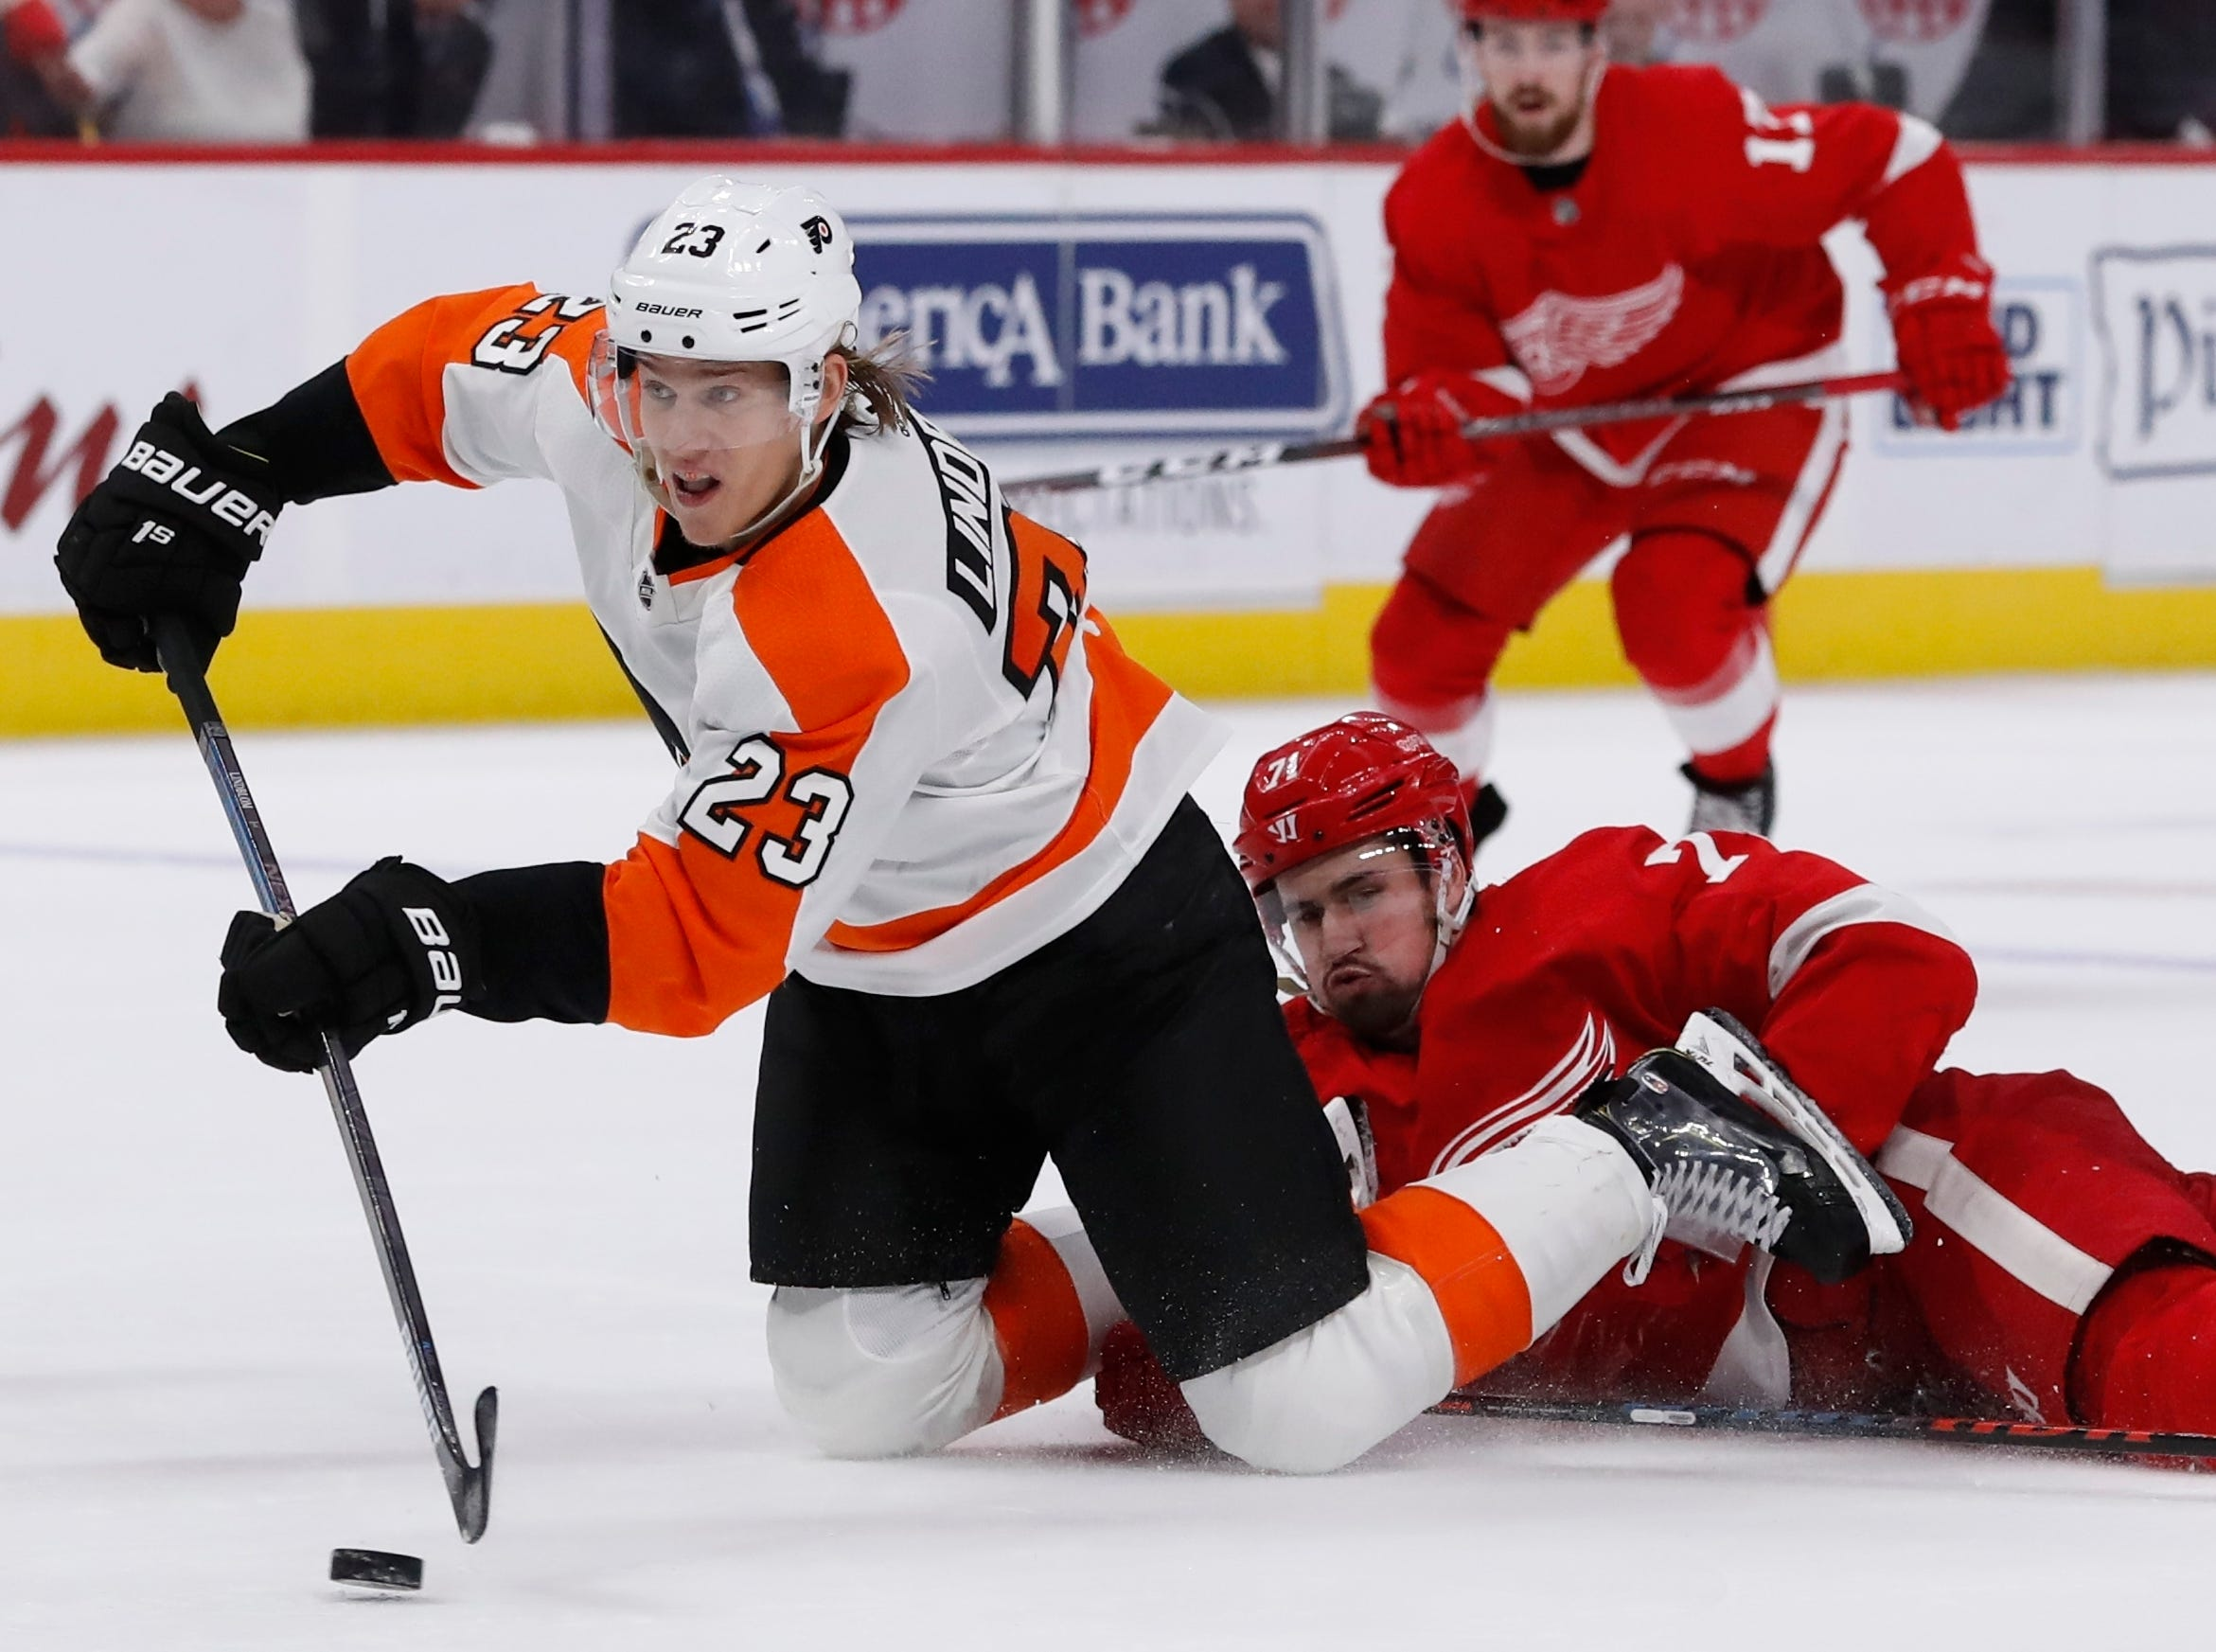 Philadelphia Flyers left wing Oskar Lindblom (23) falls in front of Detroit Red Wings center Dylan Larkin (71) and shoots an empty net goal during the third period.